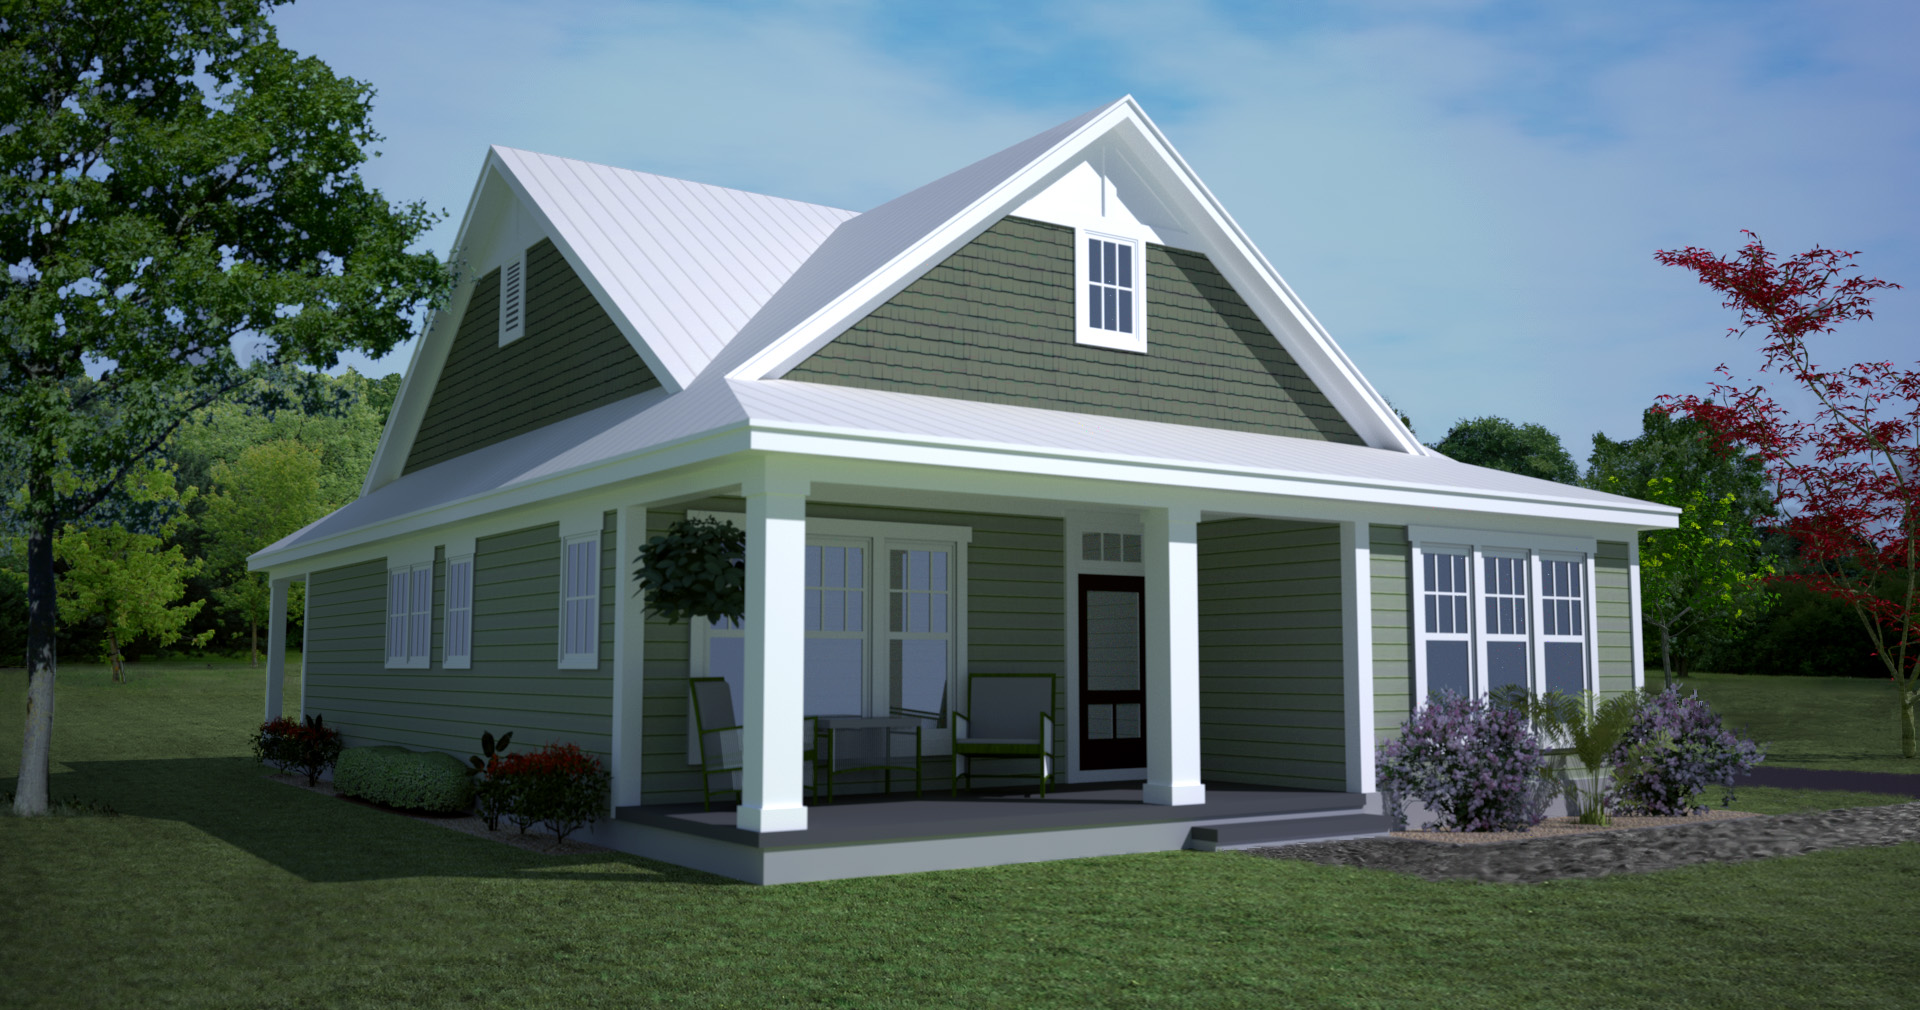 Classic american home styles house design plans for Classic house design